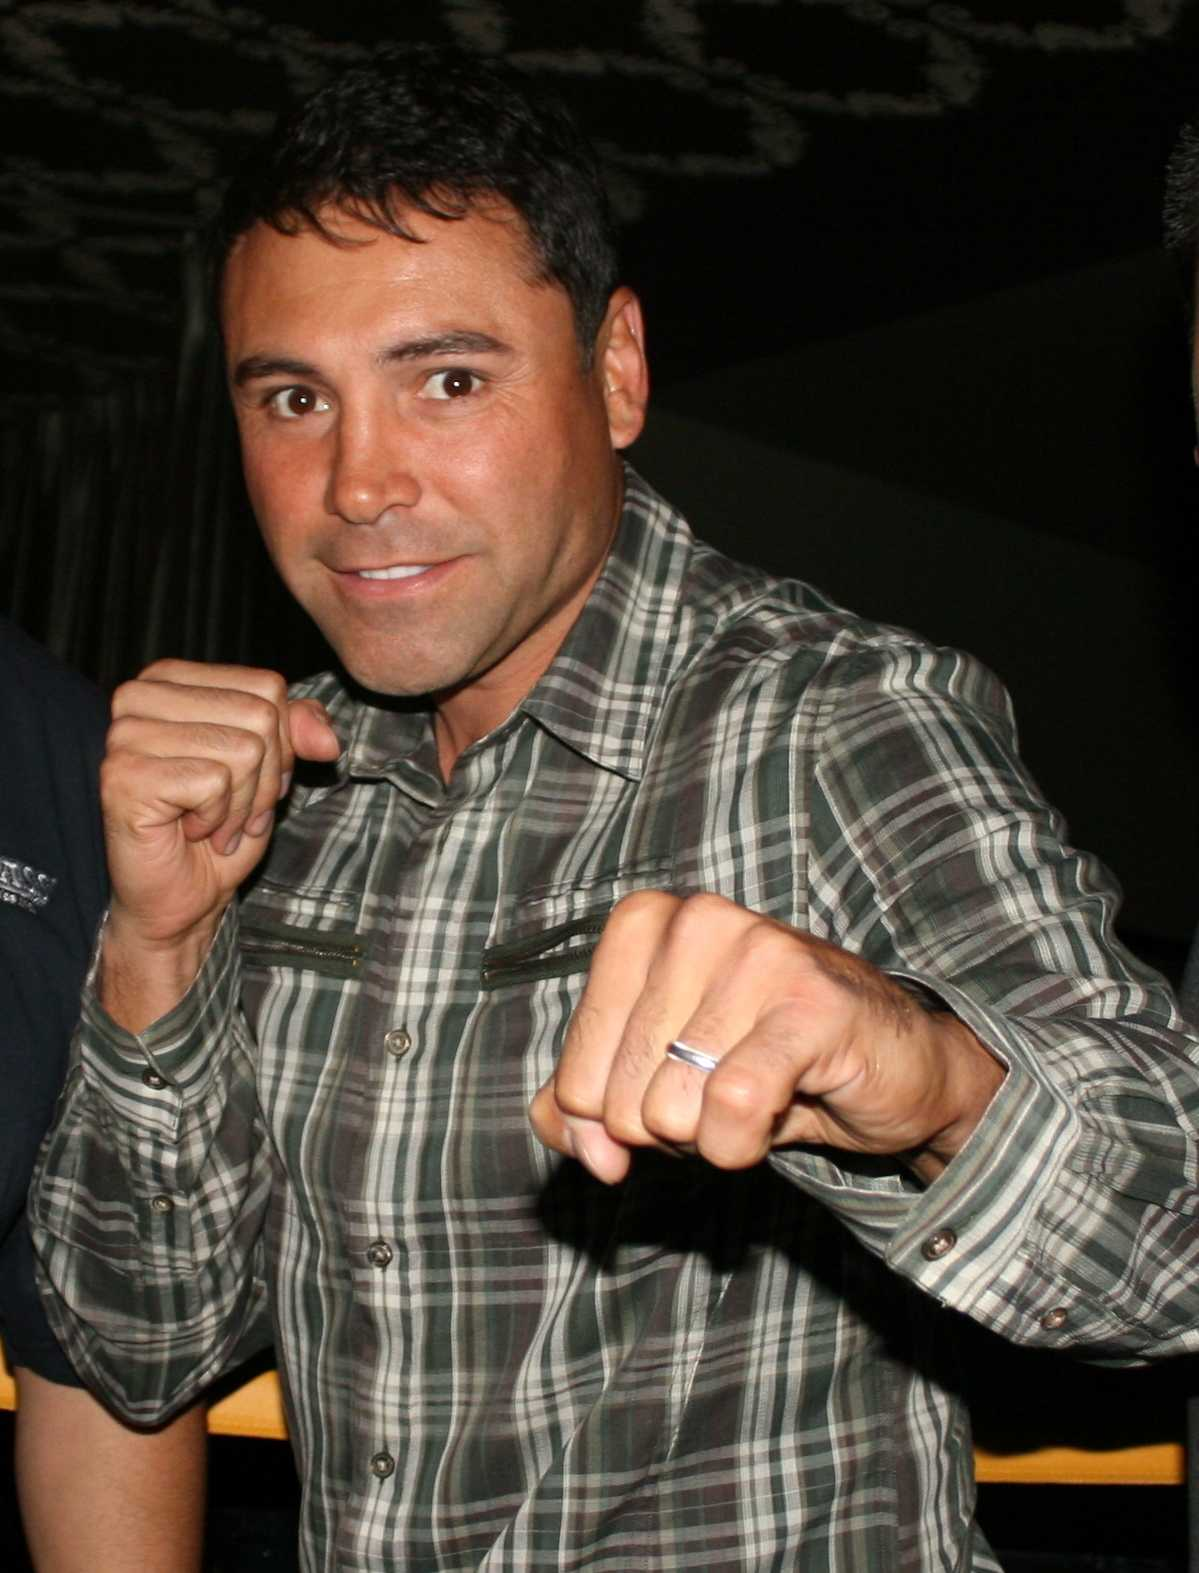 De La Hoya represents Hispanic culture through boxing success.